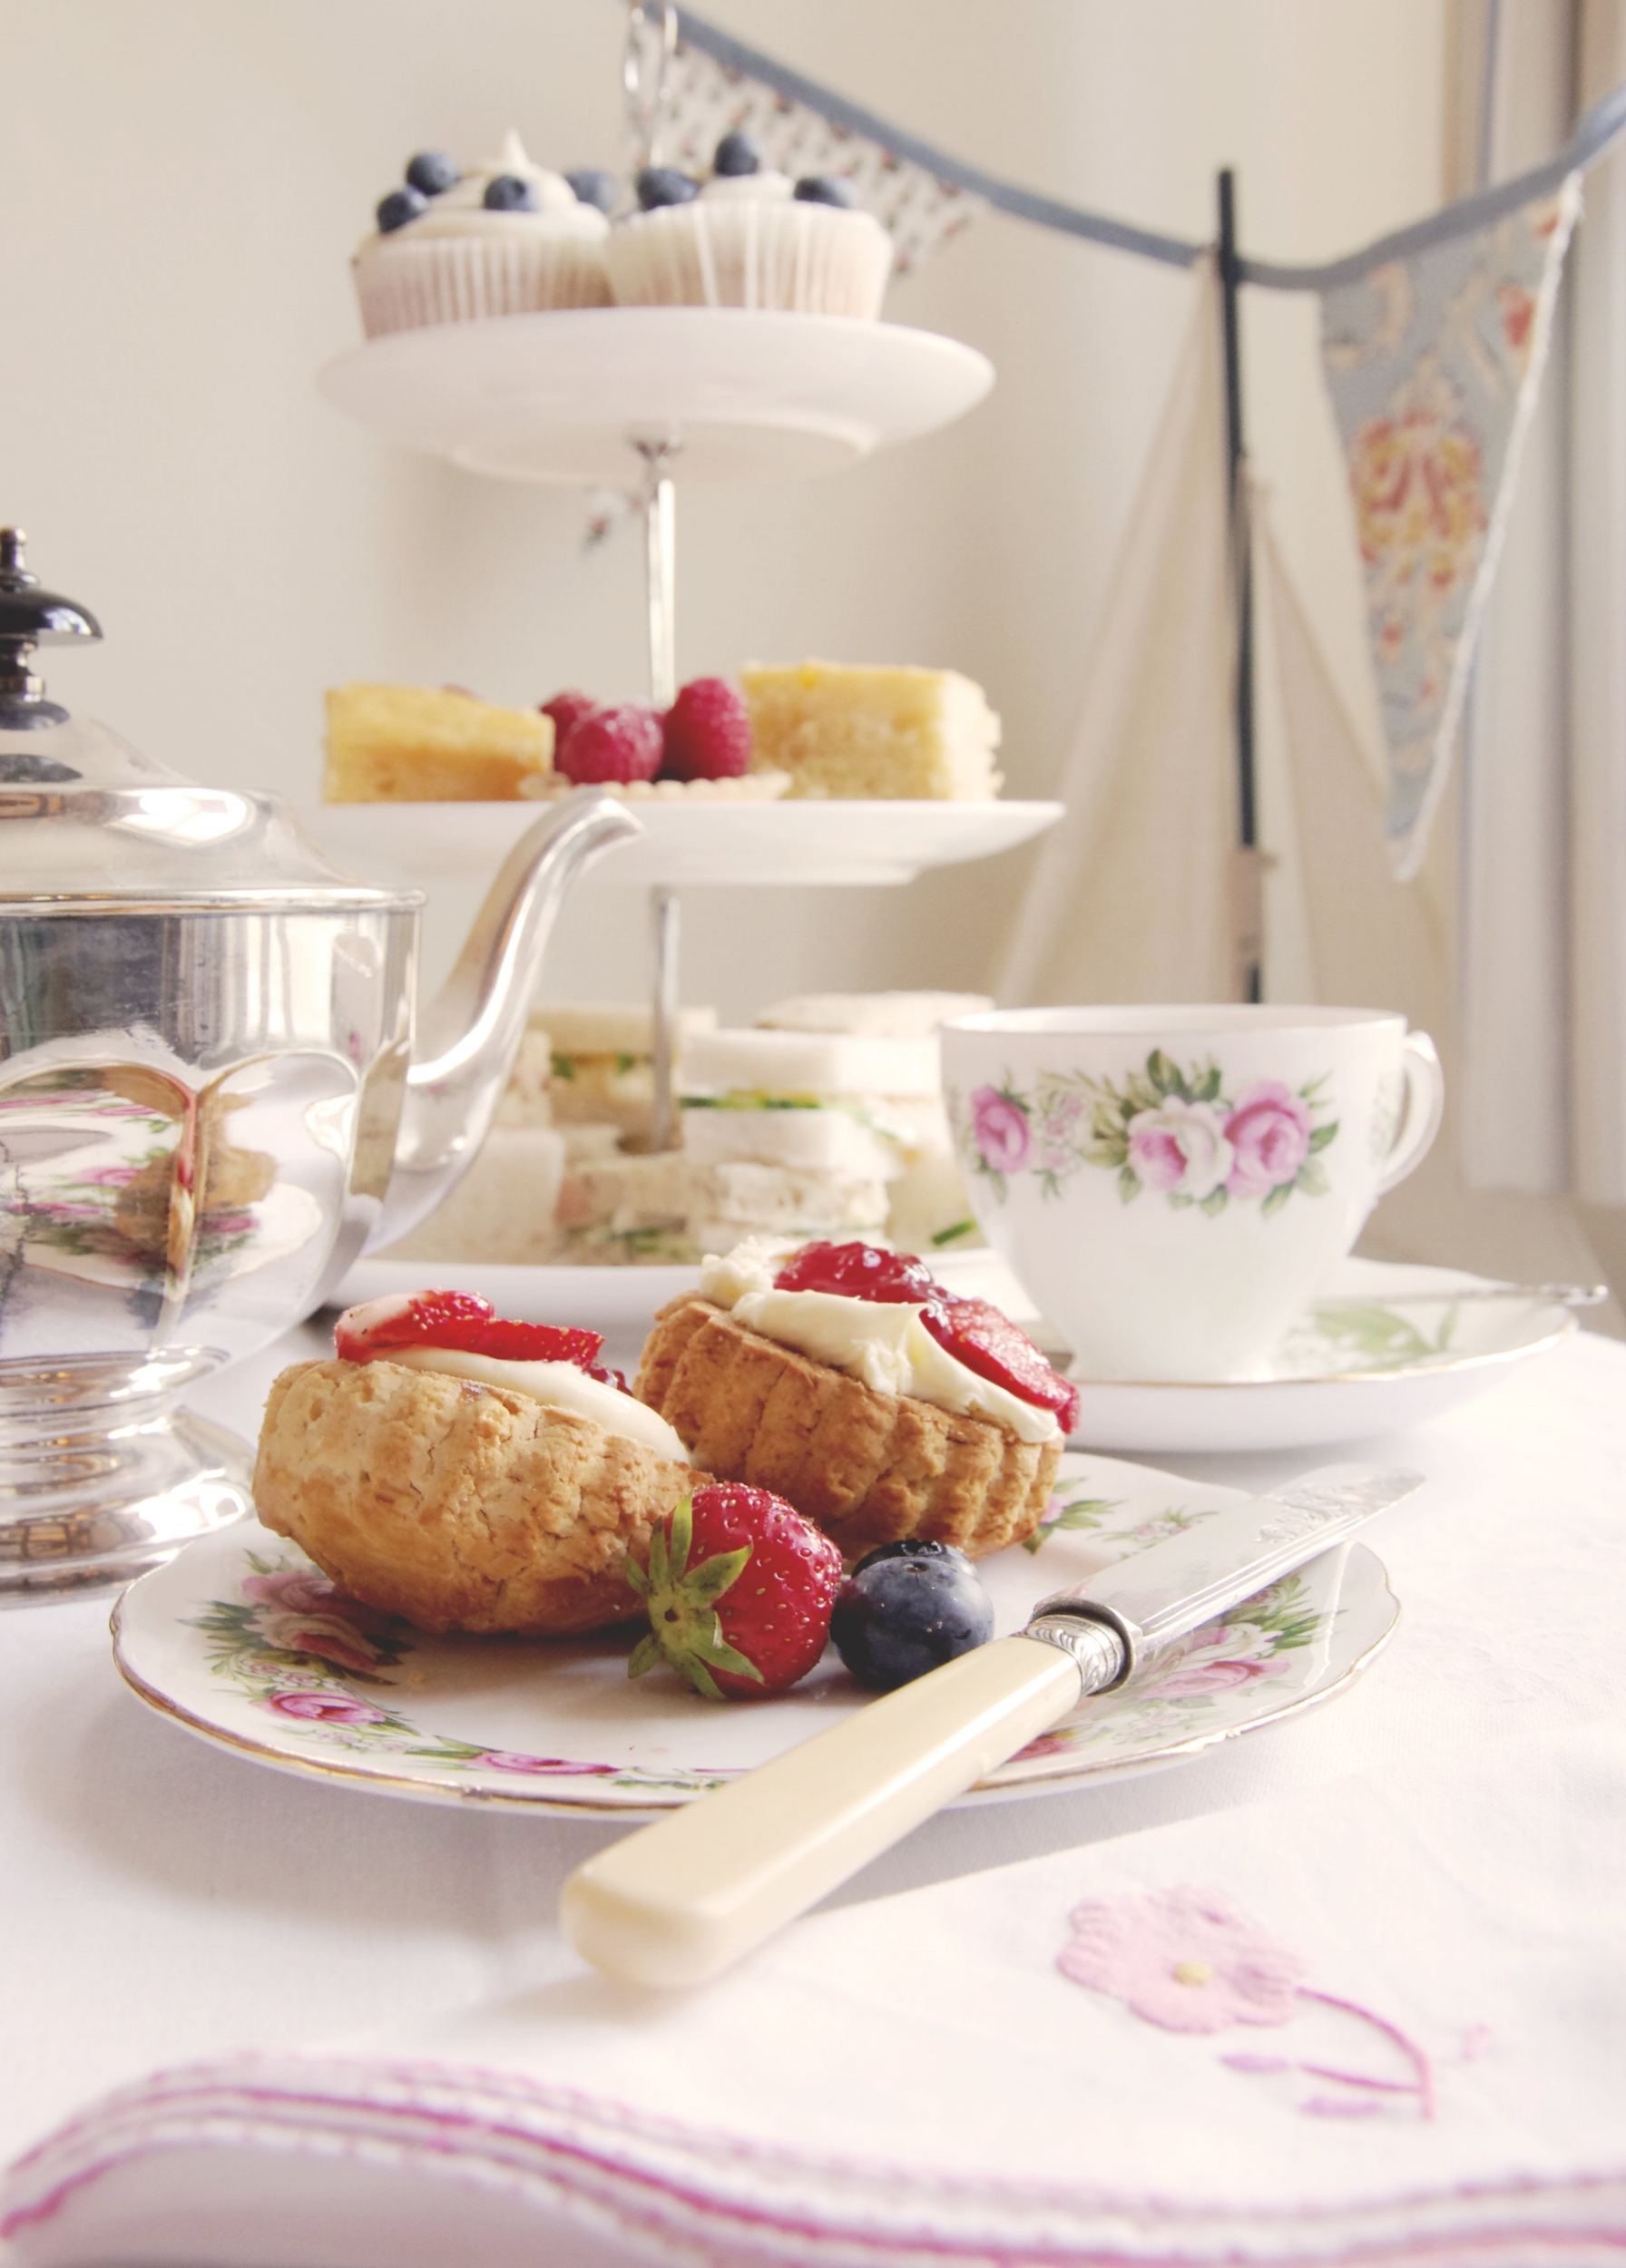 Scones with fresh strawberries, jam and clotted cream